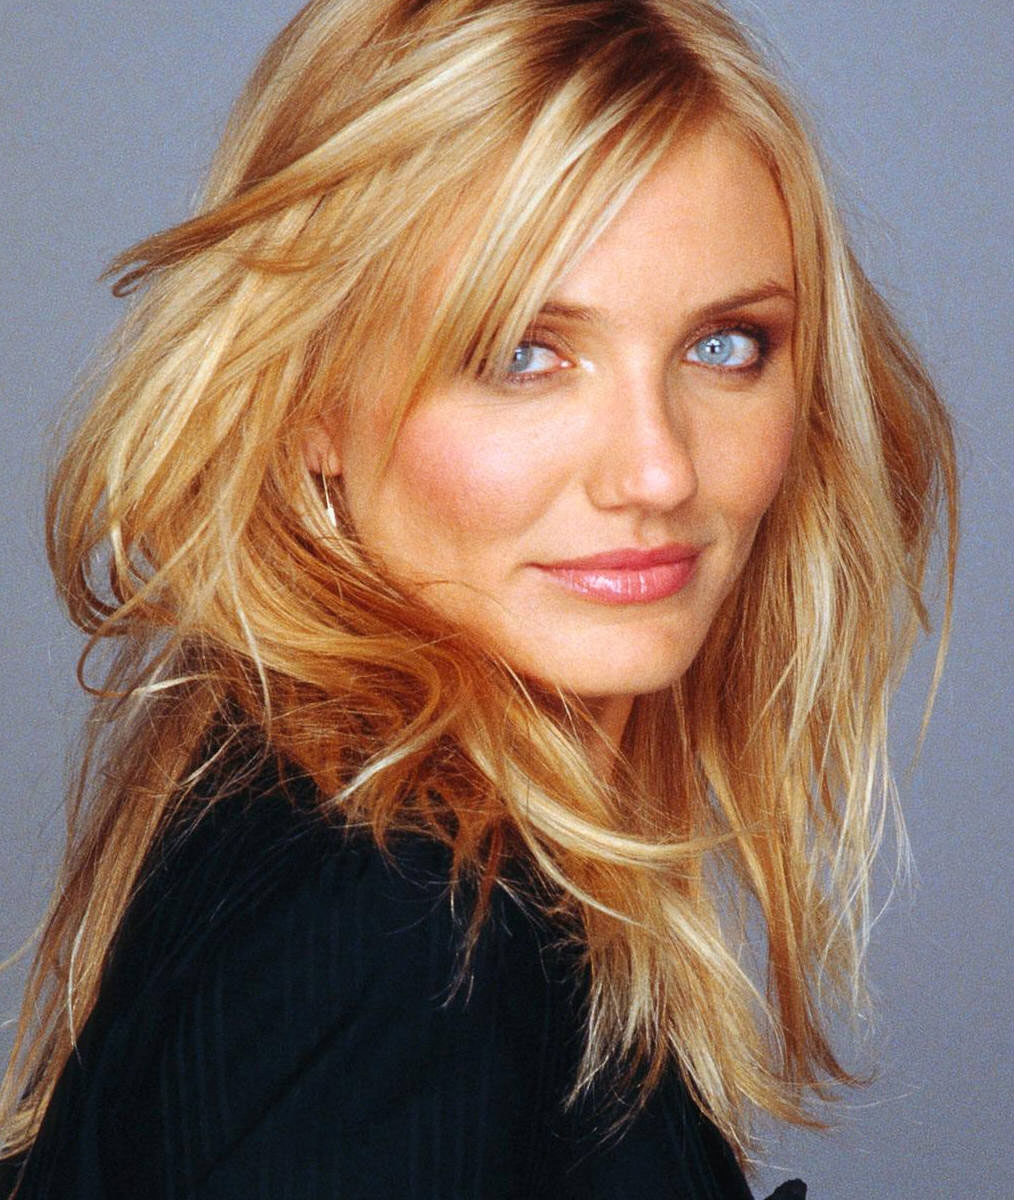 blonde Cameron hair diaz